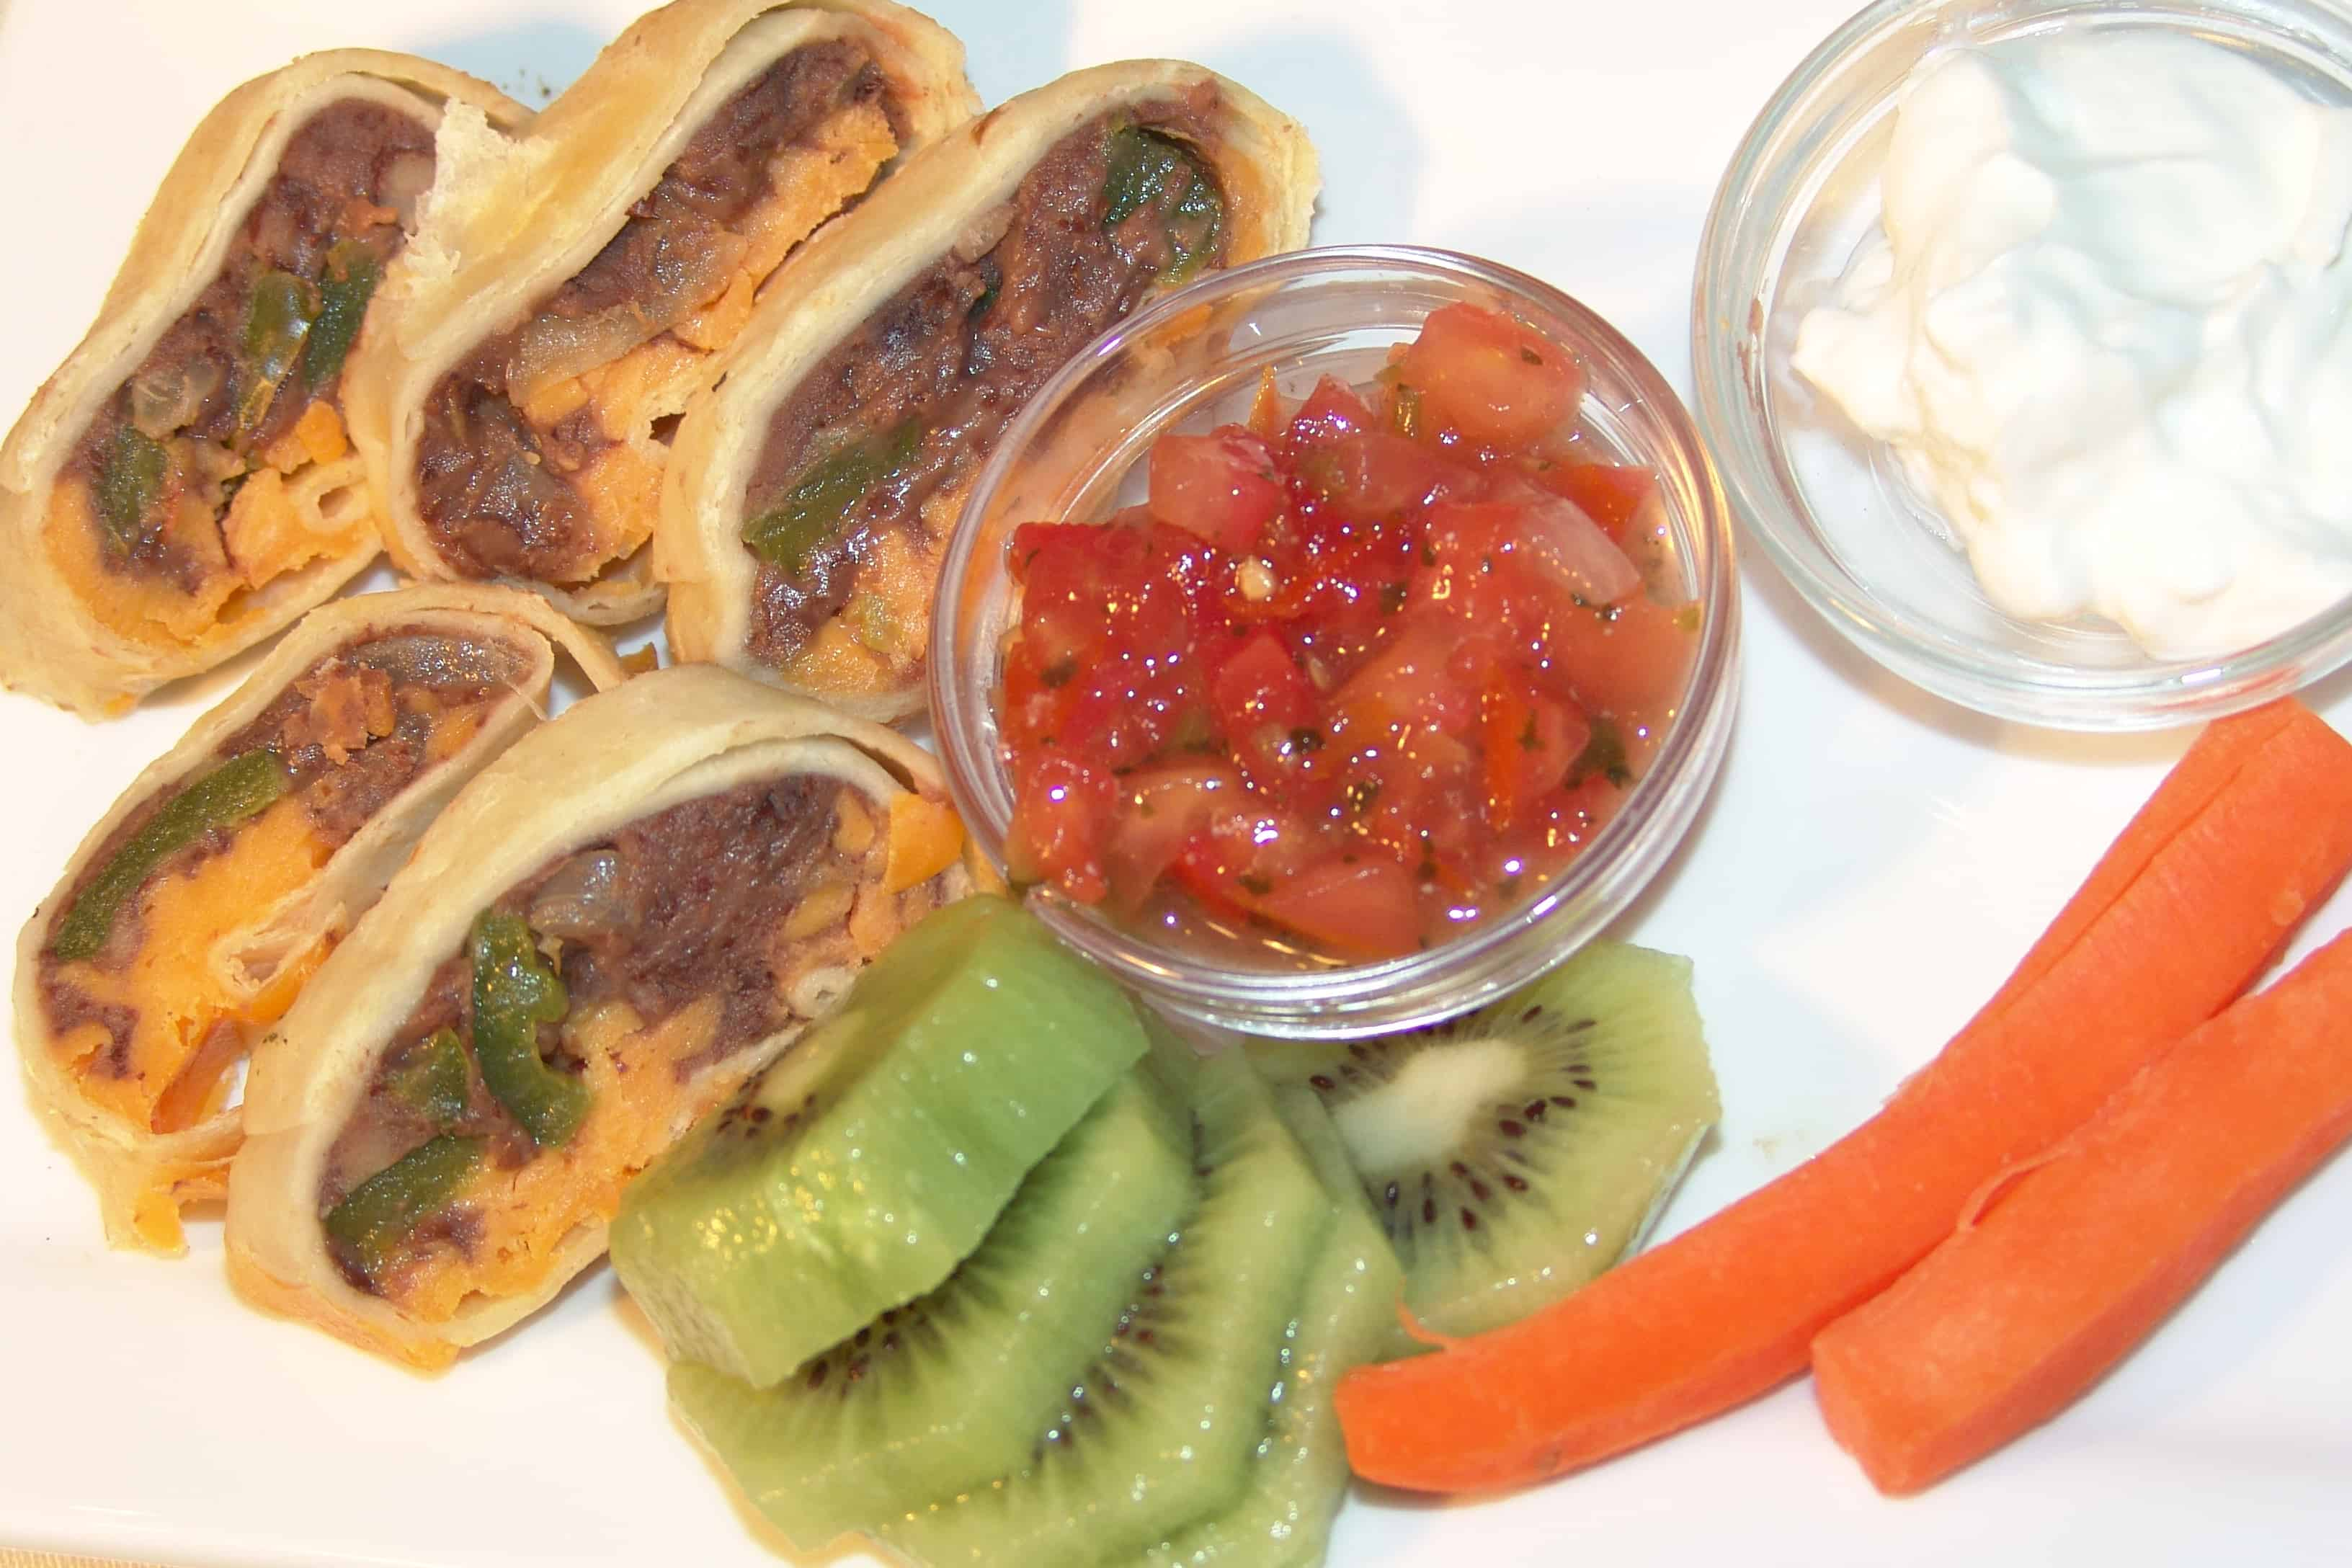 Kid friendly burritos with bean and cheese the dinner daily 5 ingredient kid fri forumfinder Image collections